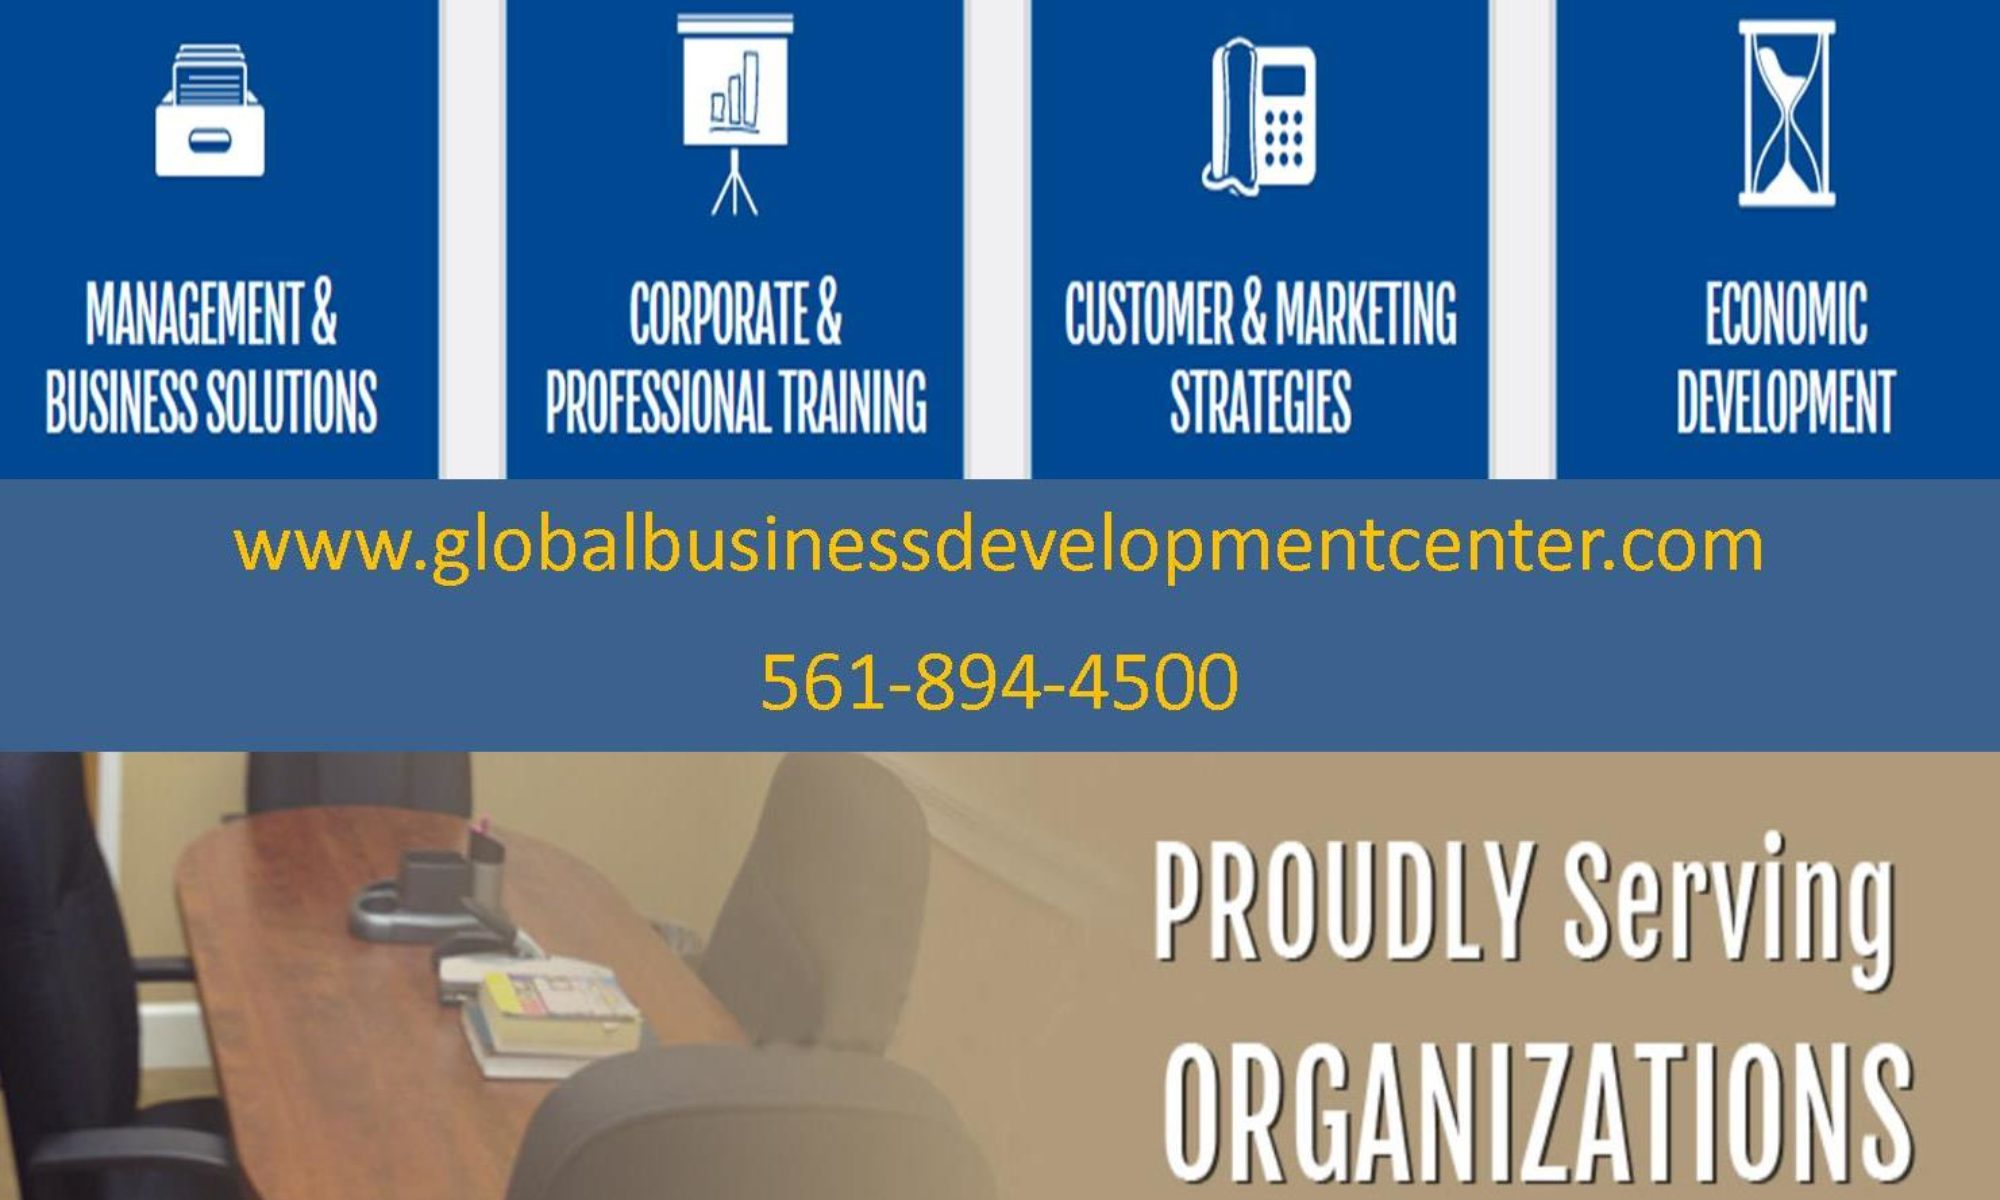 Global Business Development Center - Boynton Establishment